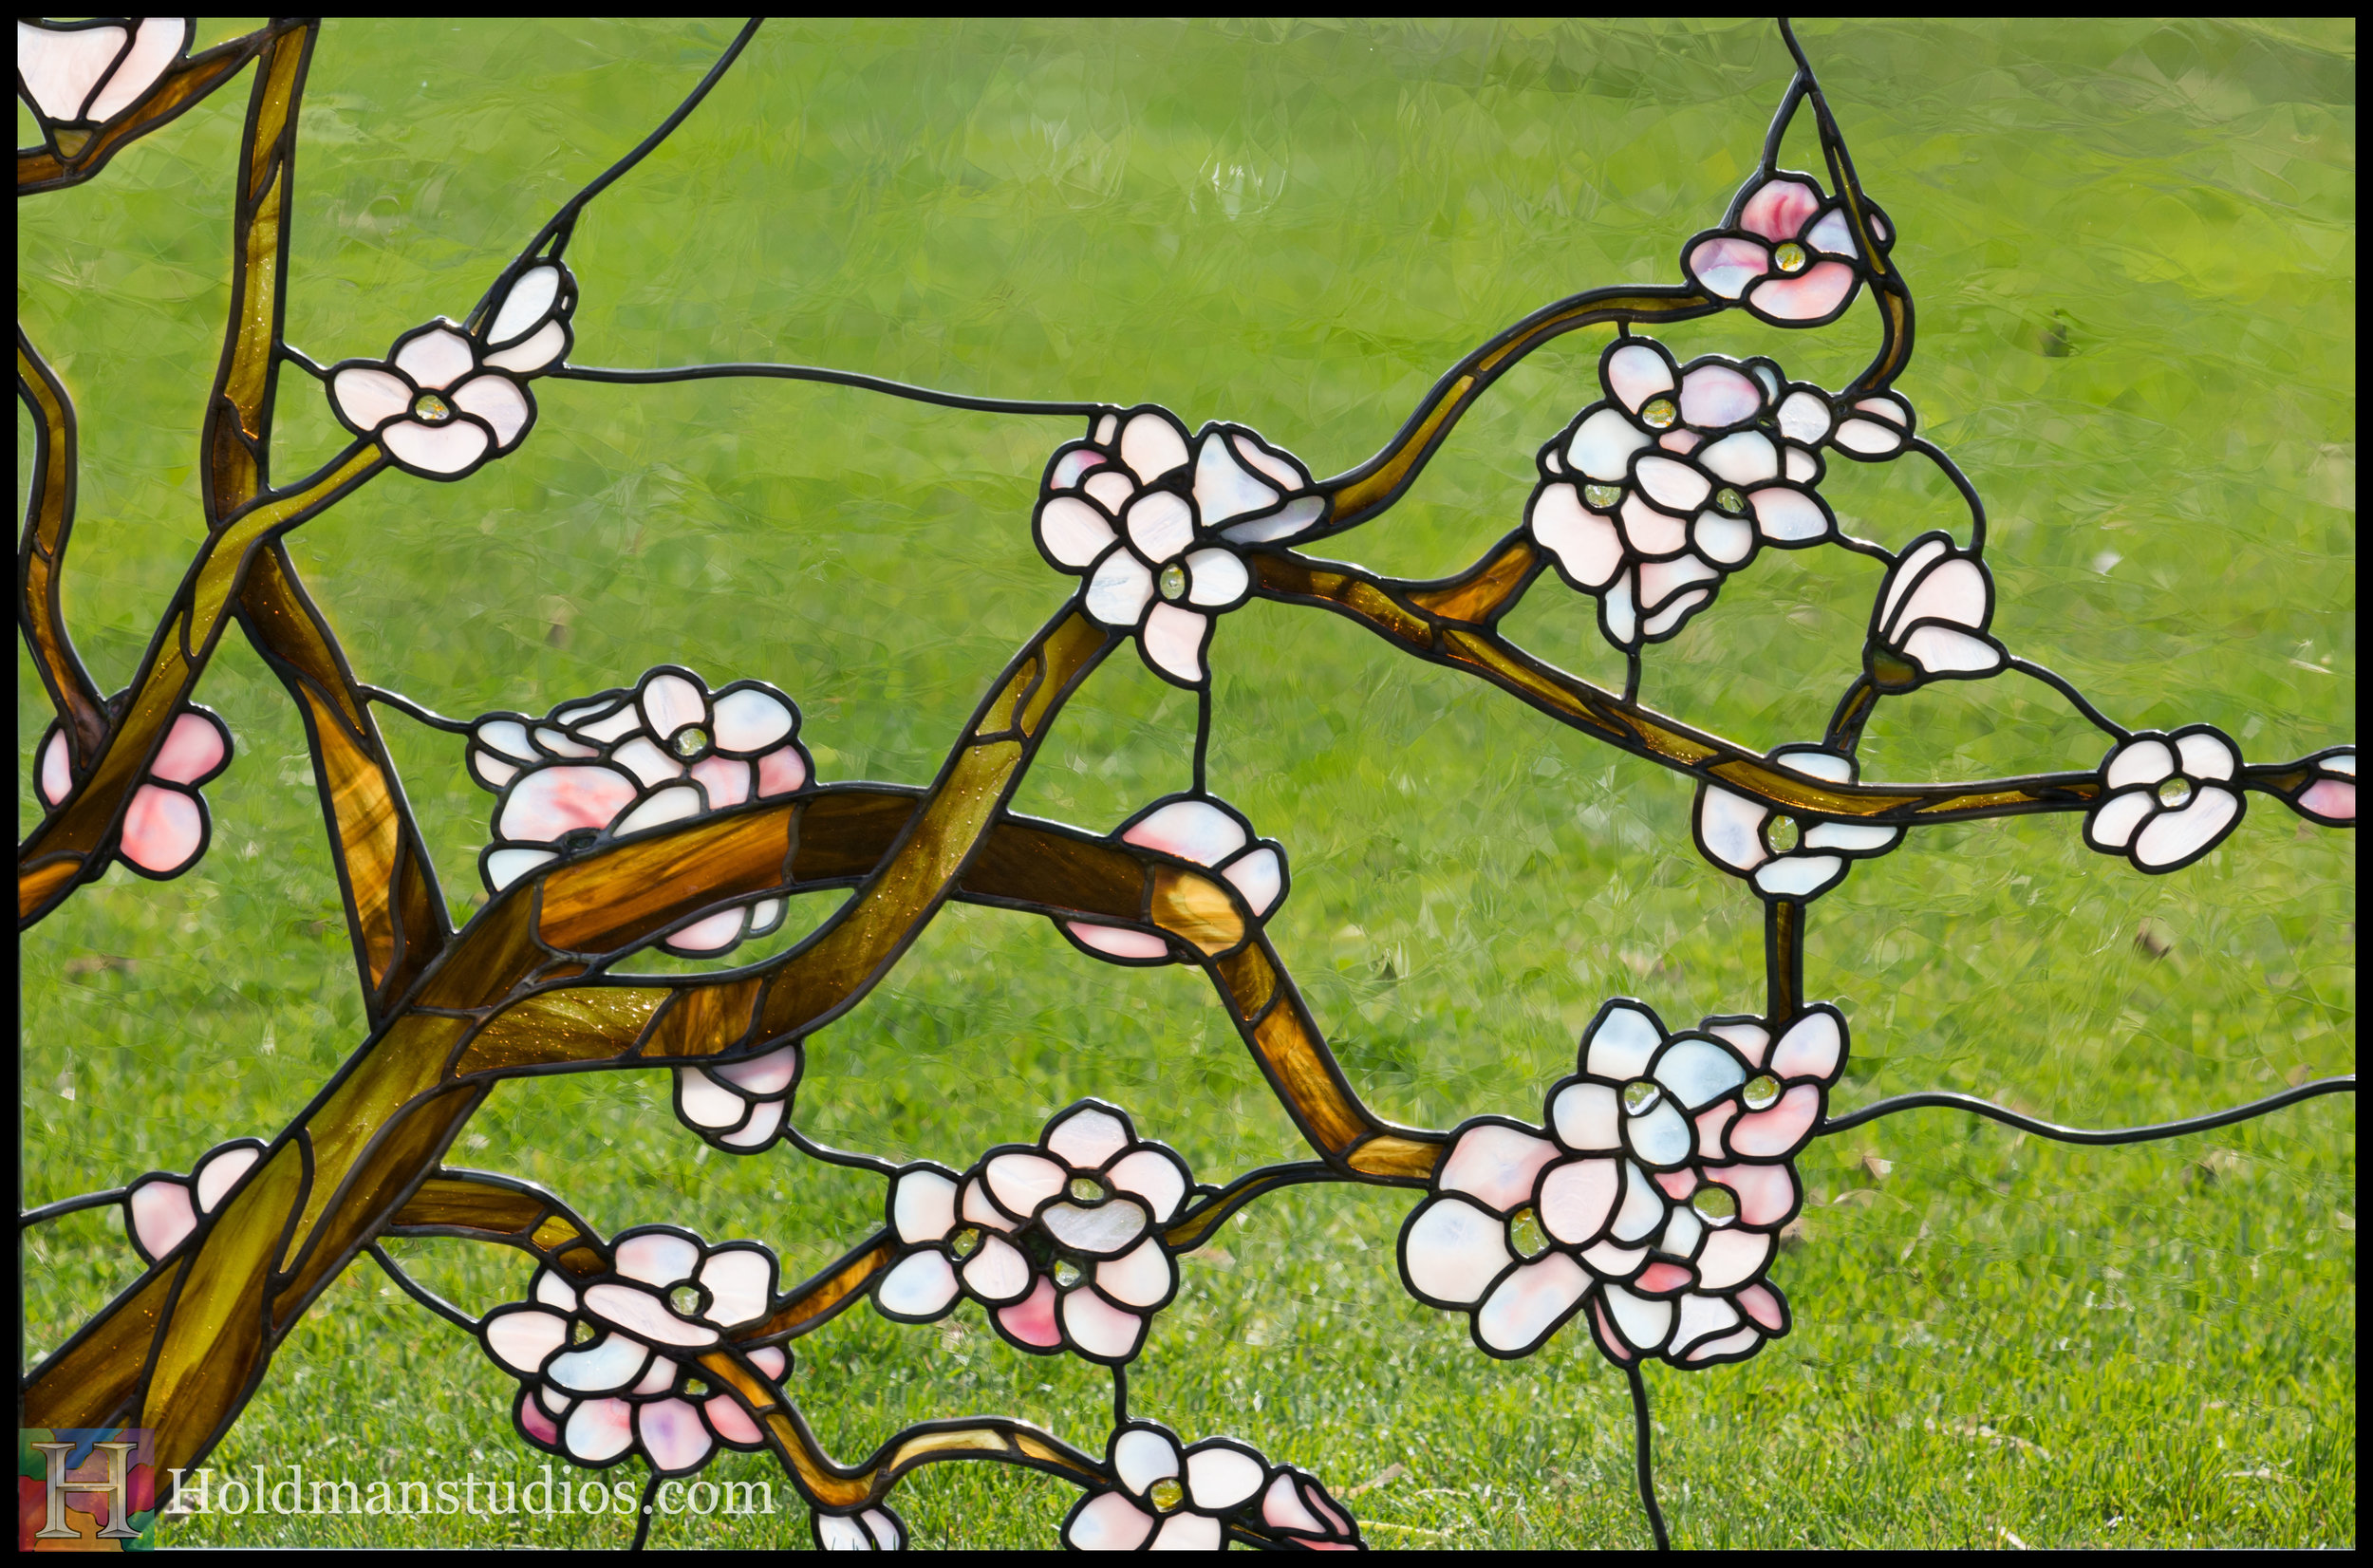 Holdman-Studios-Stained-Glass-Window-Cherry-Tree-Branches-Blossom-Flowers-Grass.jpg